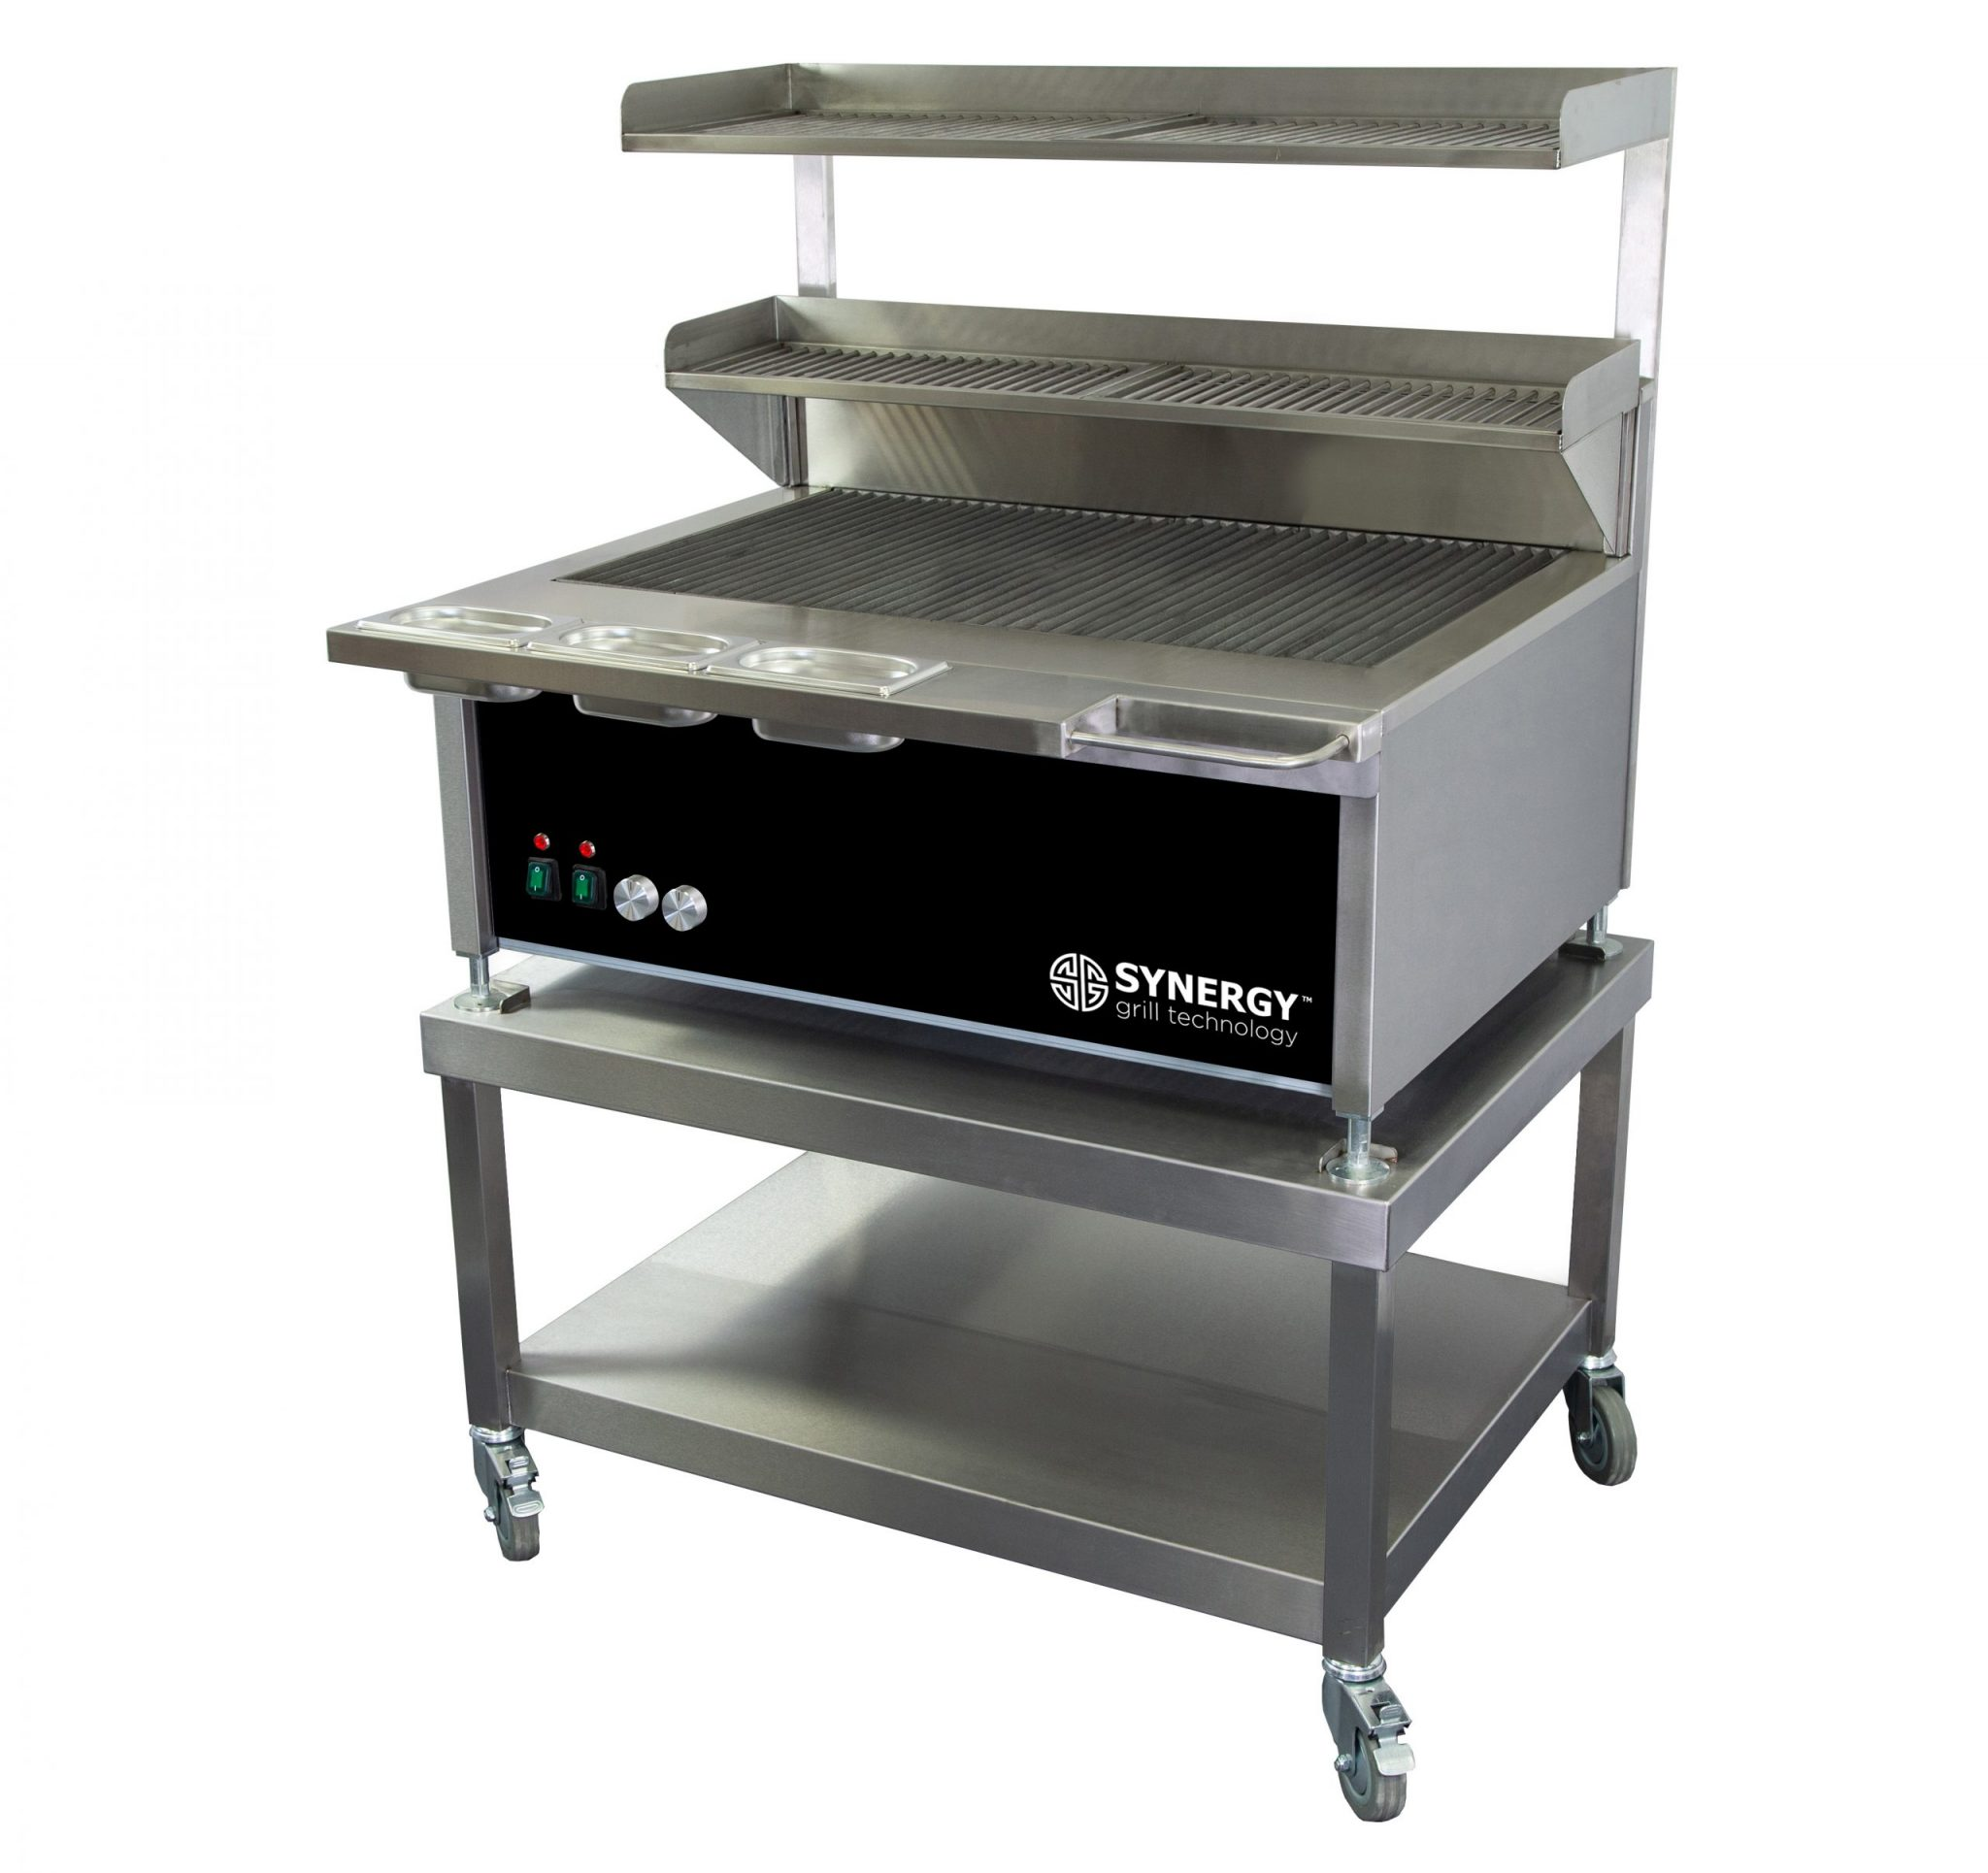 Synergy Grill Trilogy ST900D Black with Mobile Table